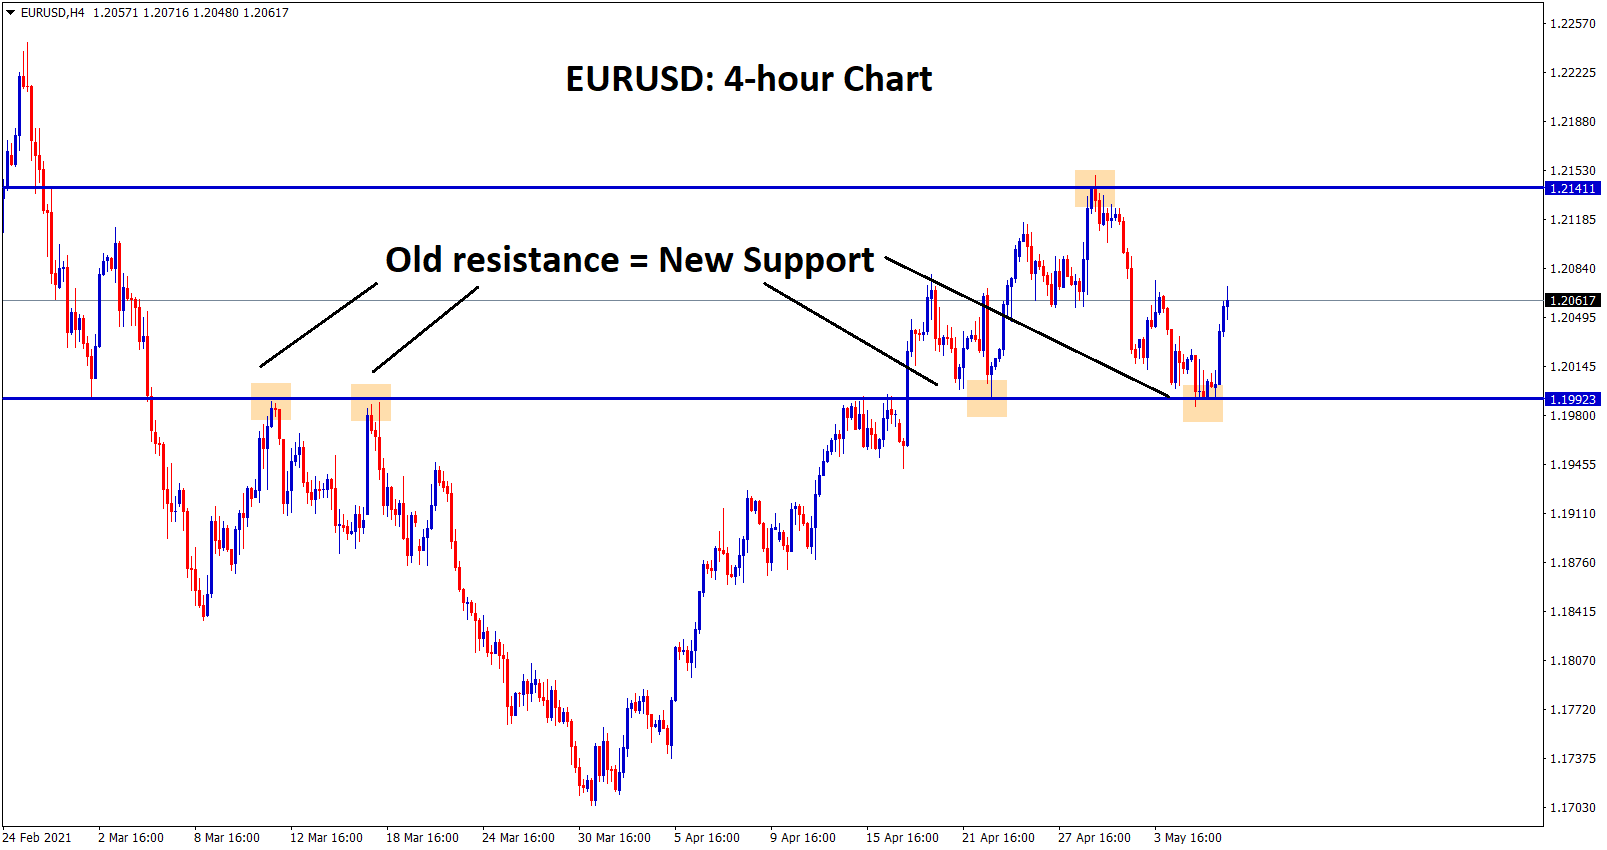 EURUSD bounced back from the support zone in 4hr